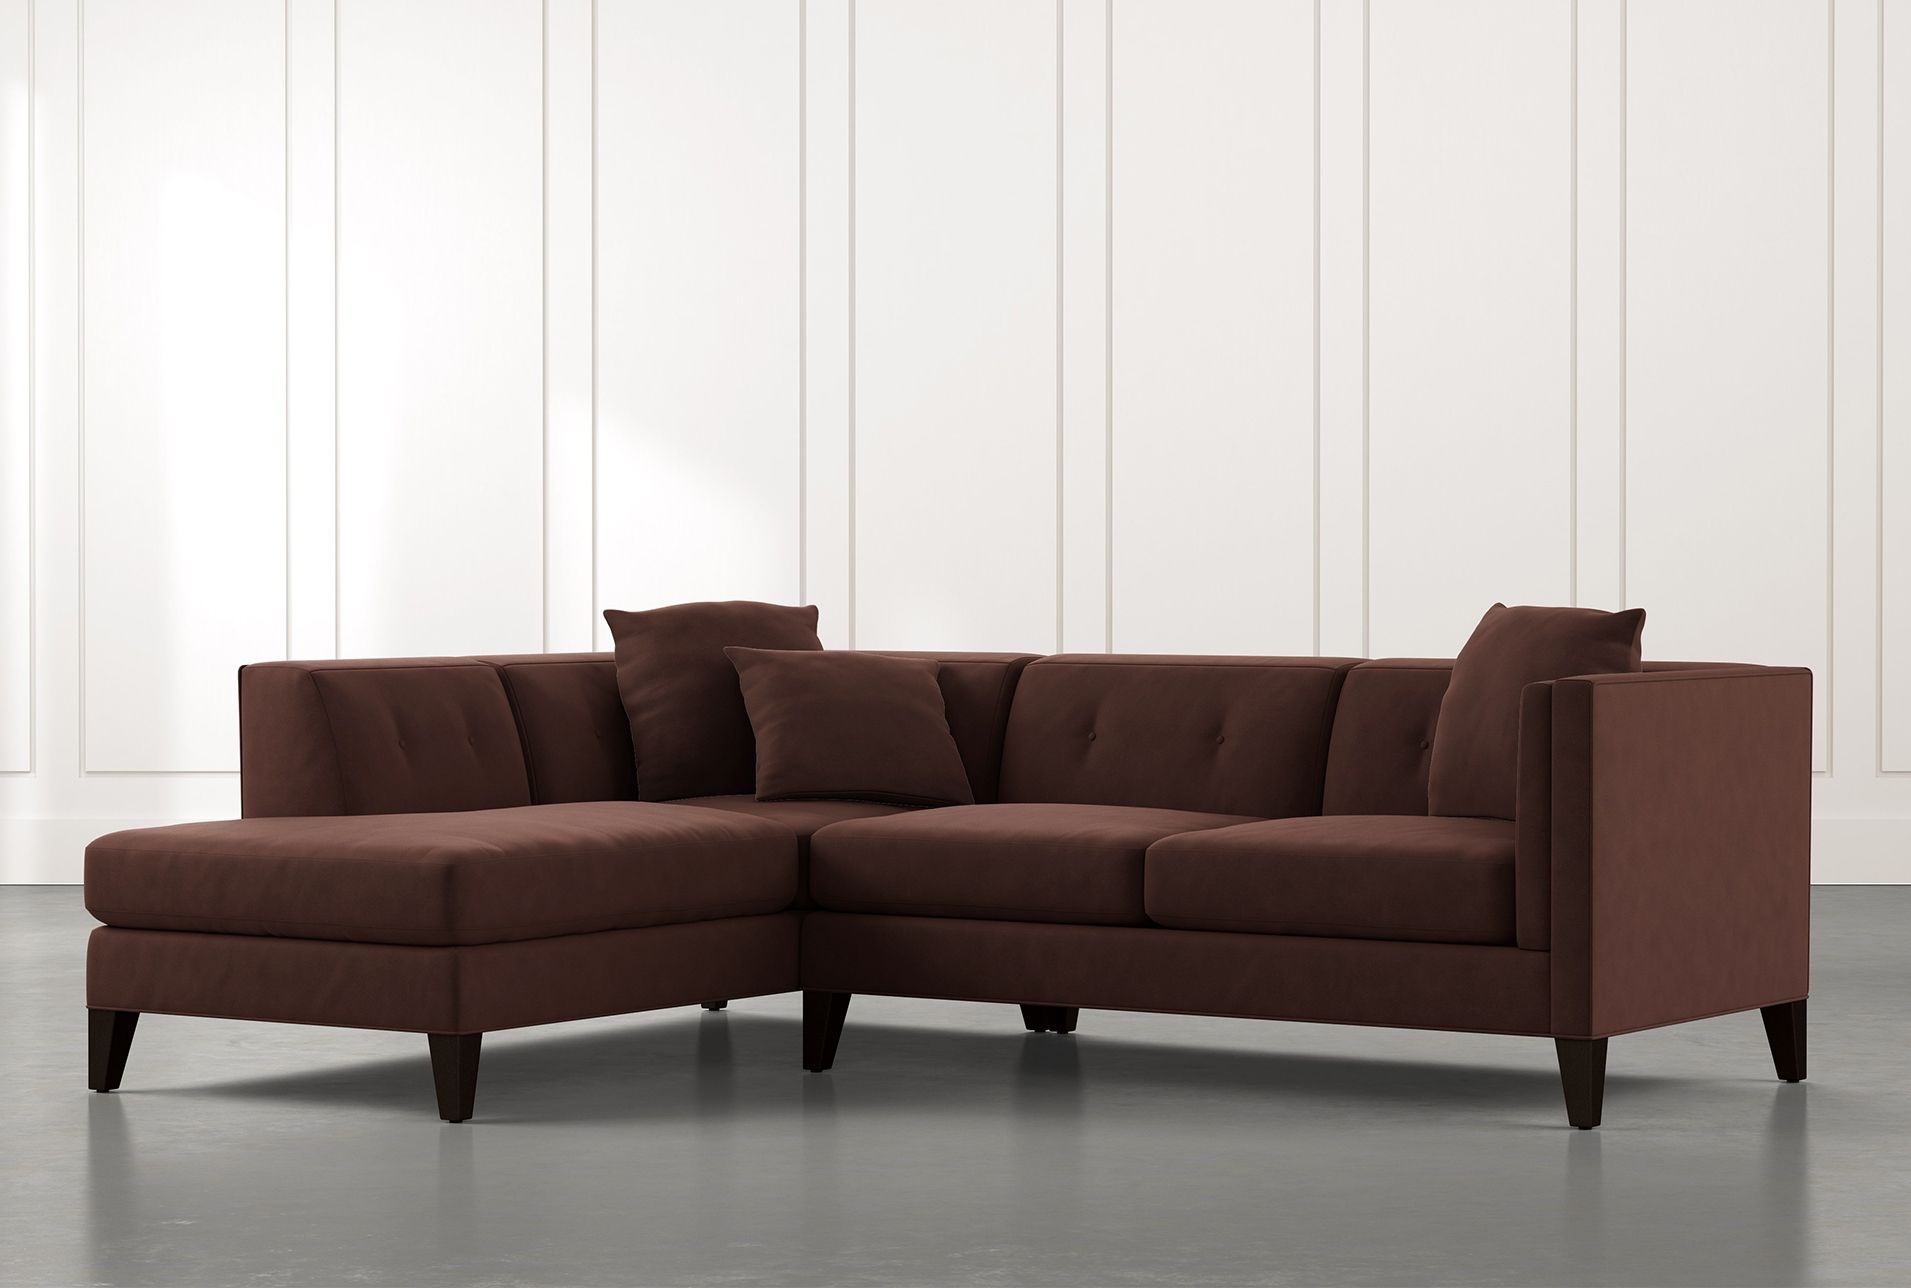 Avery Ii Brown 2 Piece Sectional With Left Arm Facing Pertaining To Avery 2 Piece Sectionals With Laf Armless Chaise (View 4 of 15)